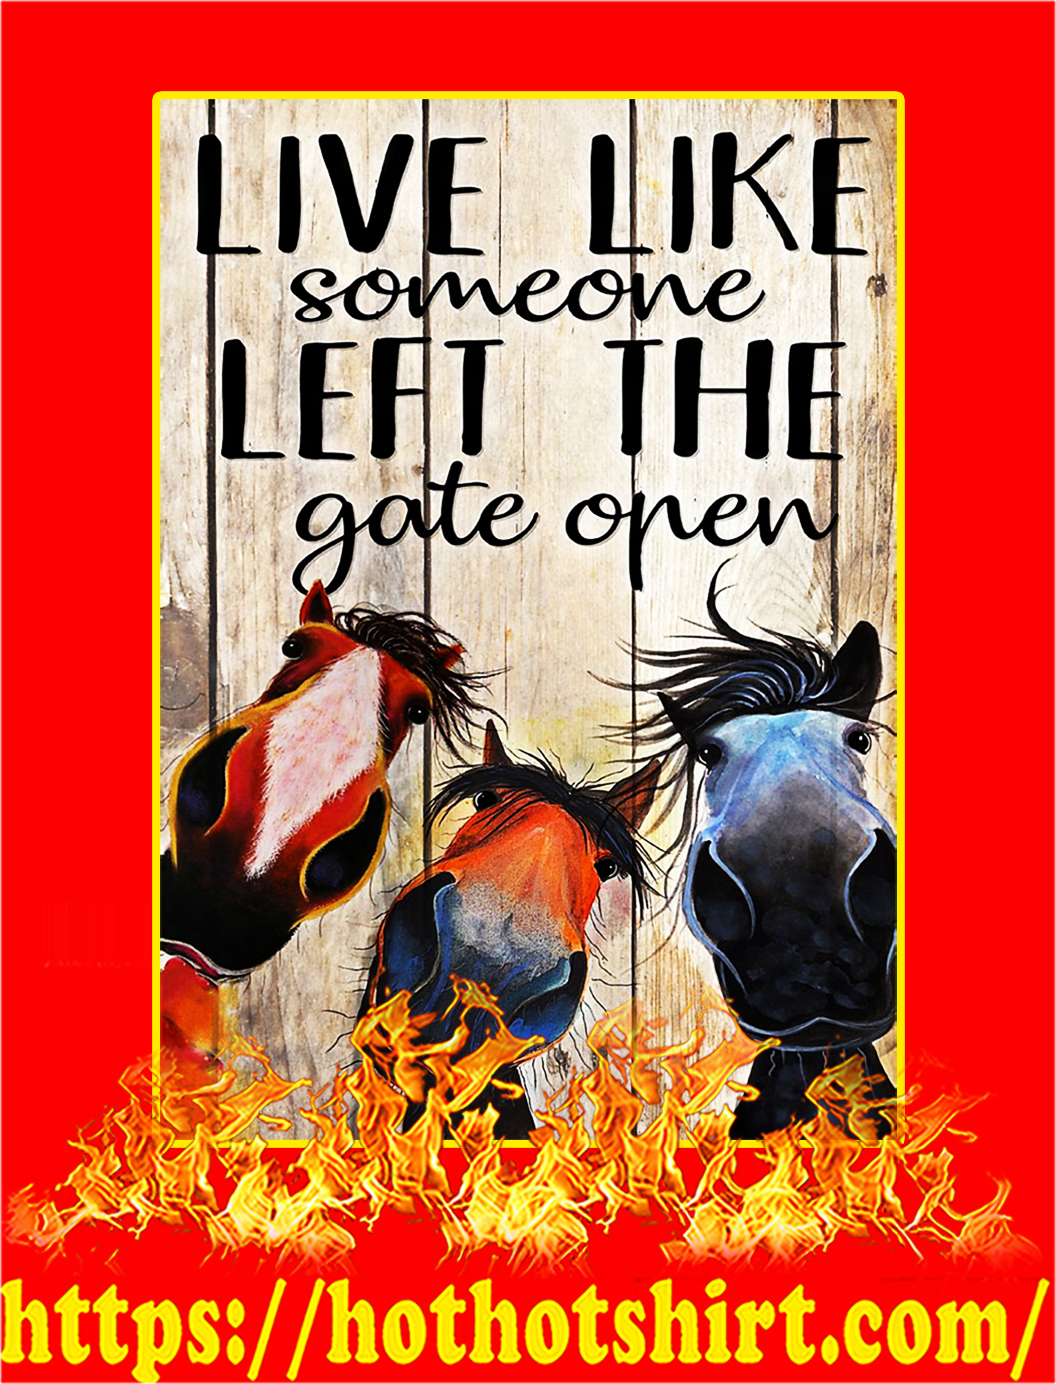 Horse Live Like Someone Left The Gate Open Poster - A4